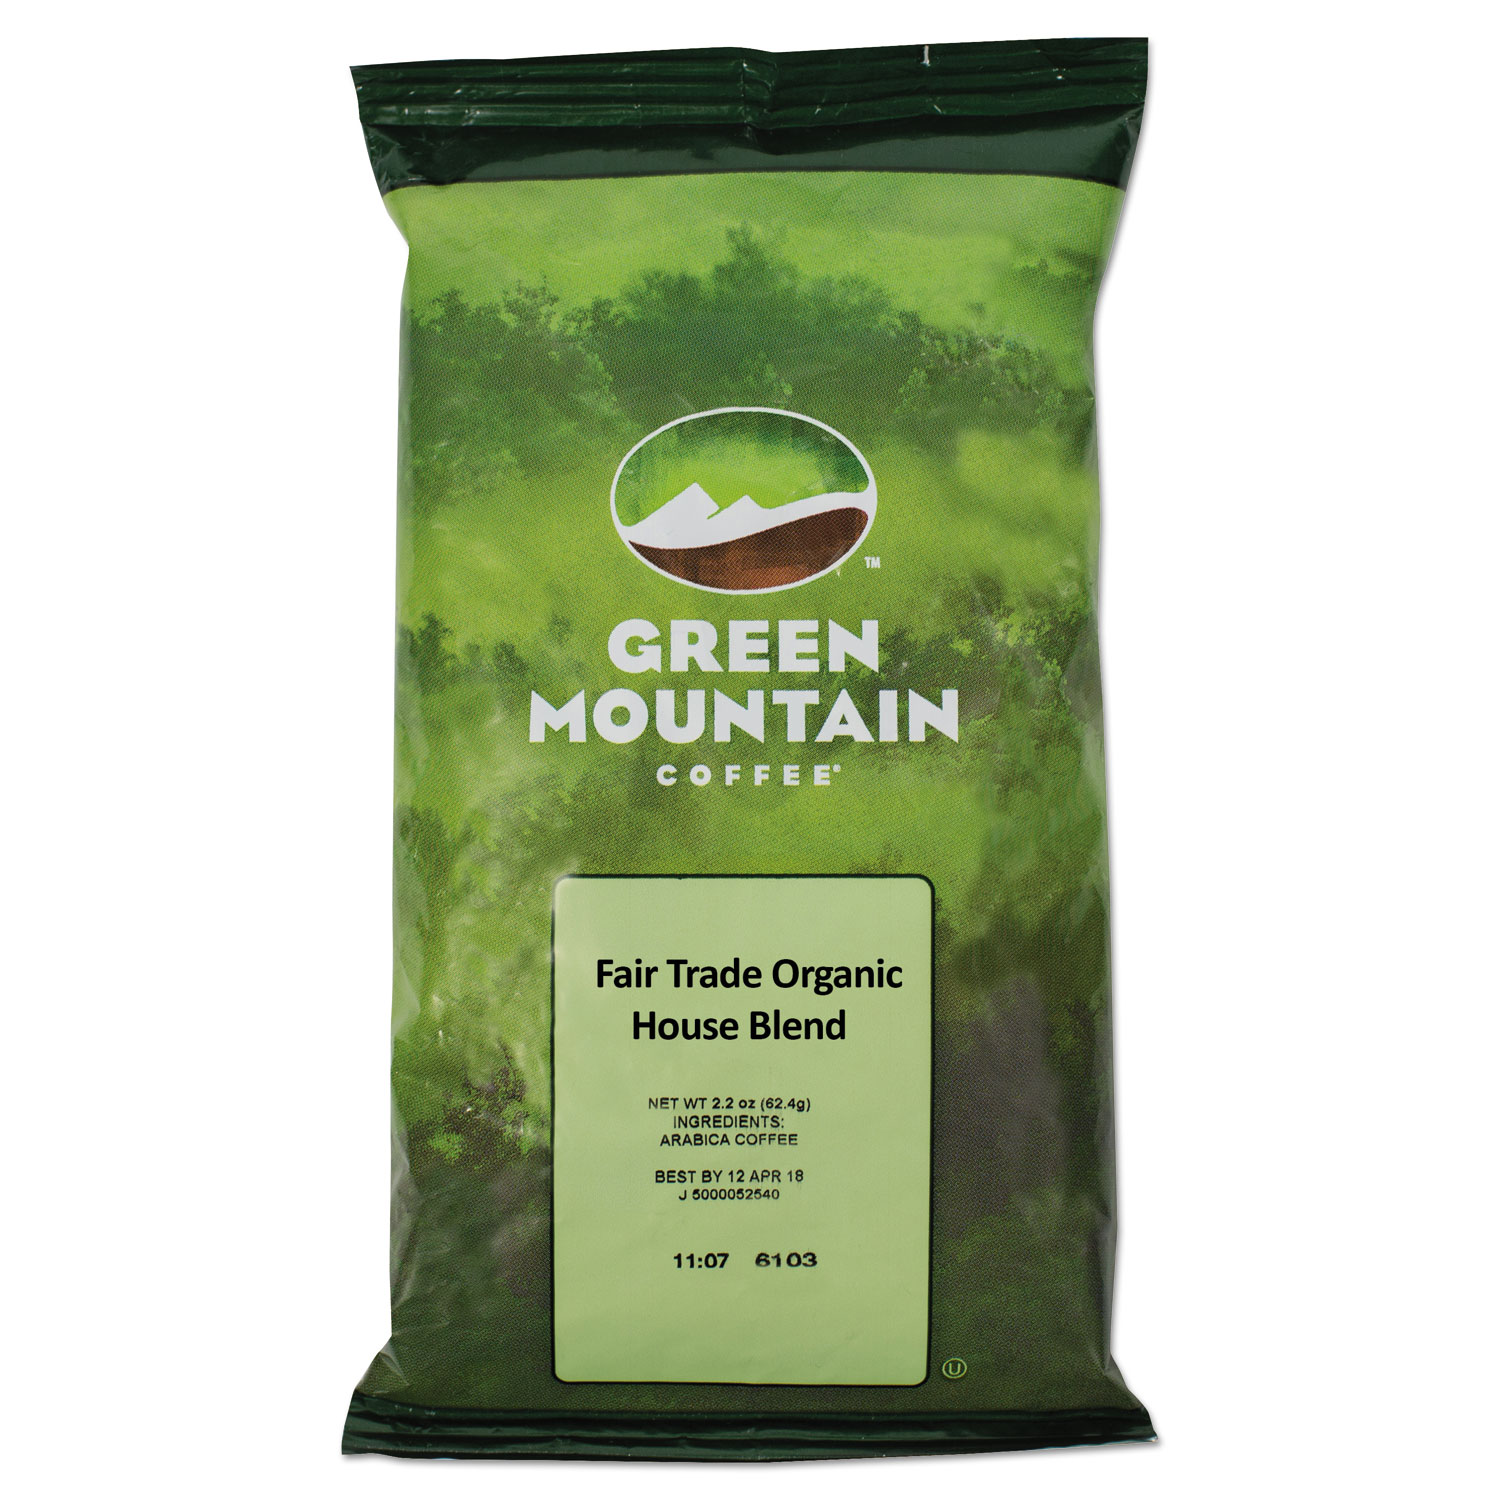 Green Mountain Coffee Roasters Fair Trade Organic House Blend Coffee Fractional Packs 2.5oz 50/Carton (Green Mountain Coffee Roasters 4493)